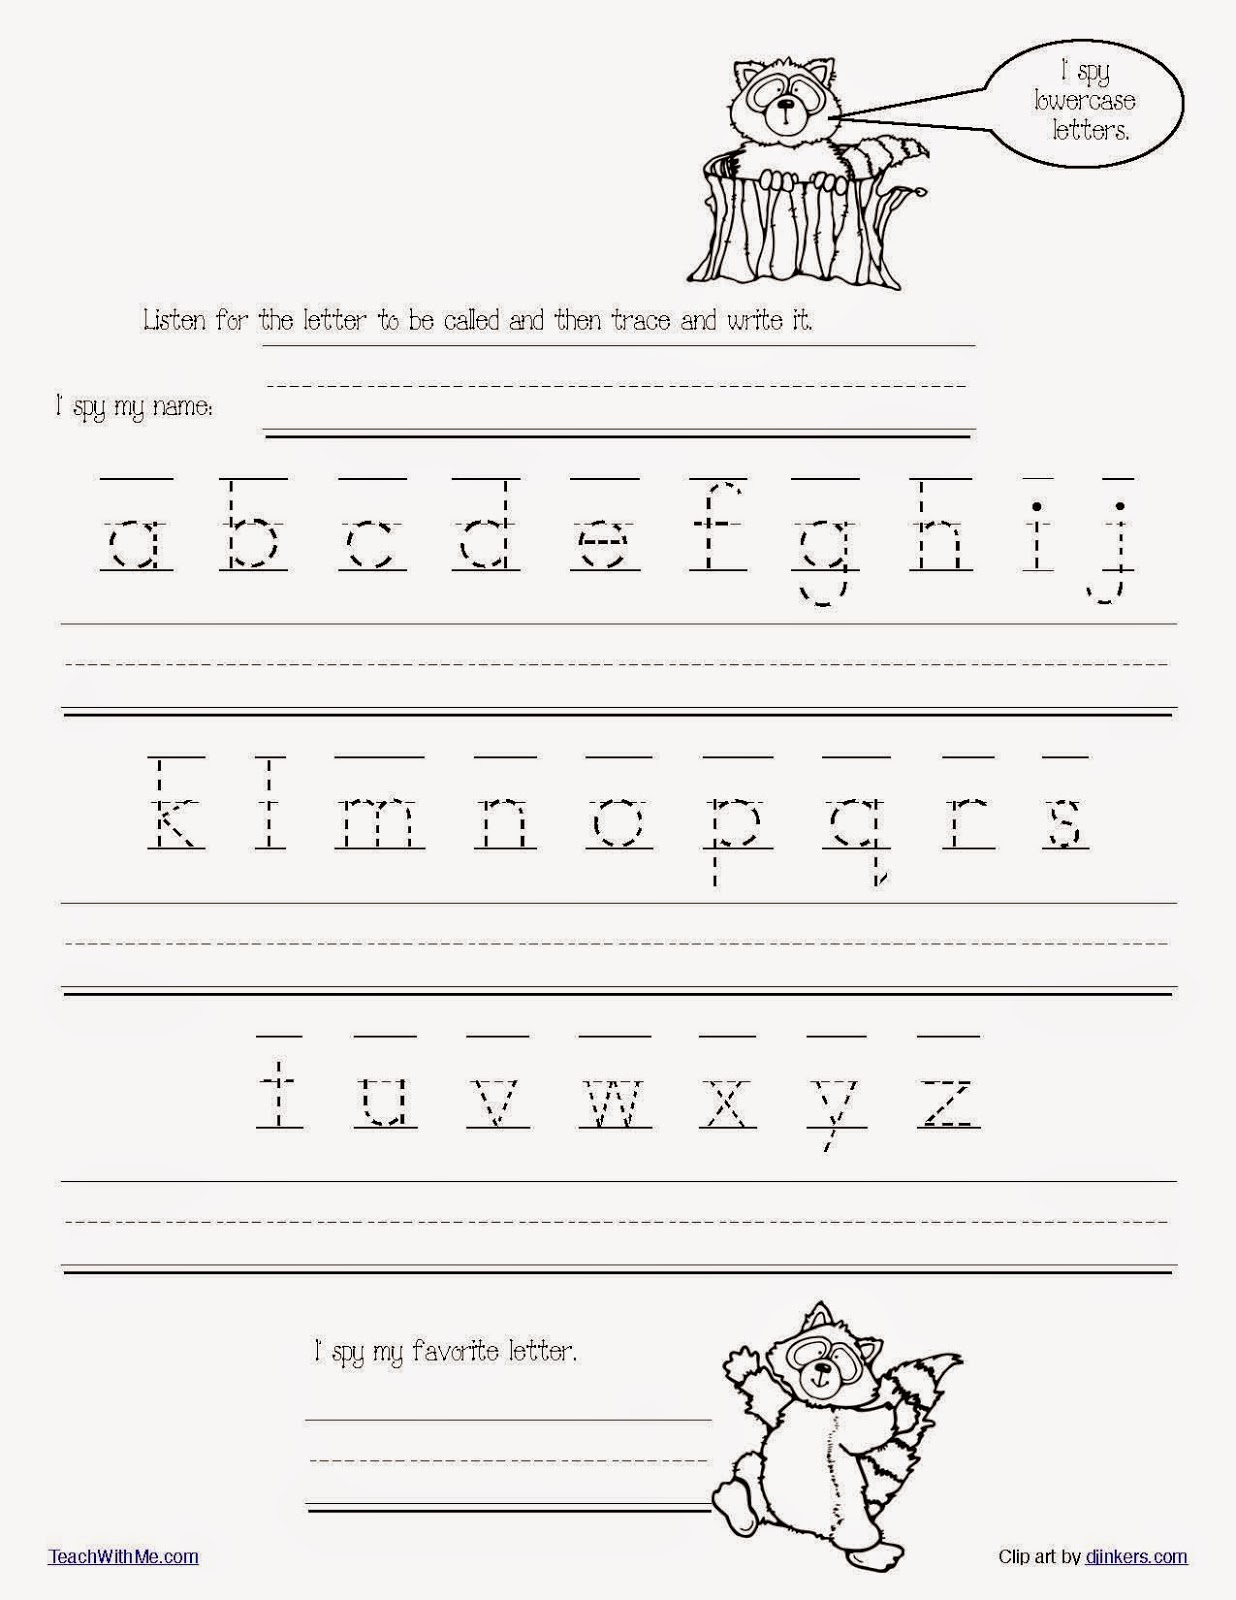 worksheet Lowercase A Worksheet upper and lowercase letter tracing worksheets alphabet on copying